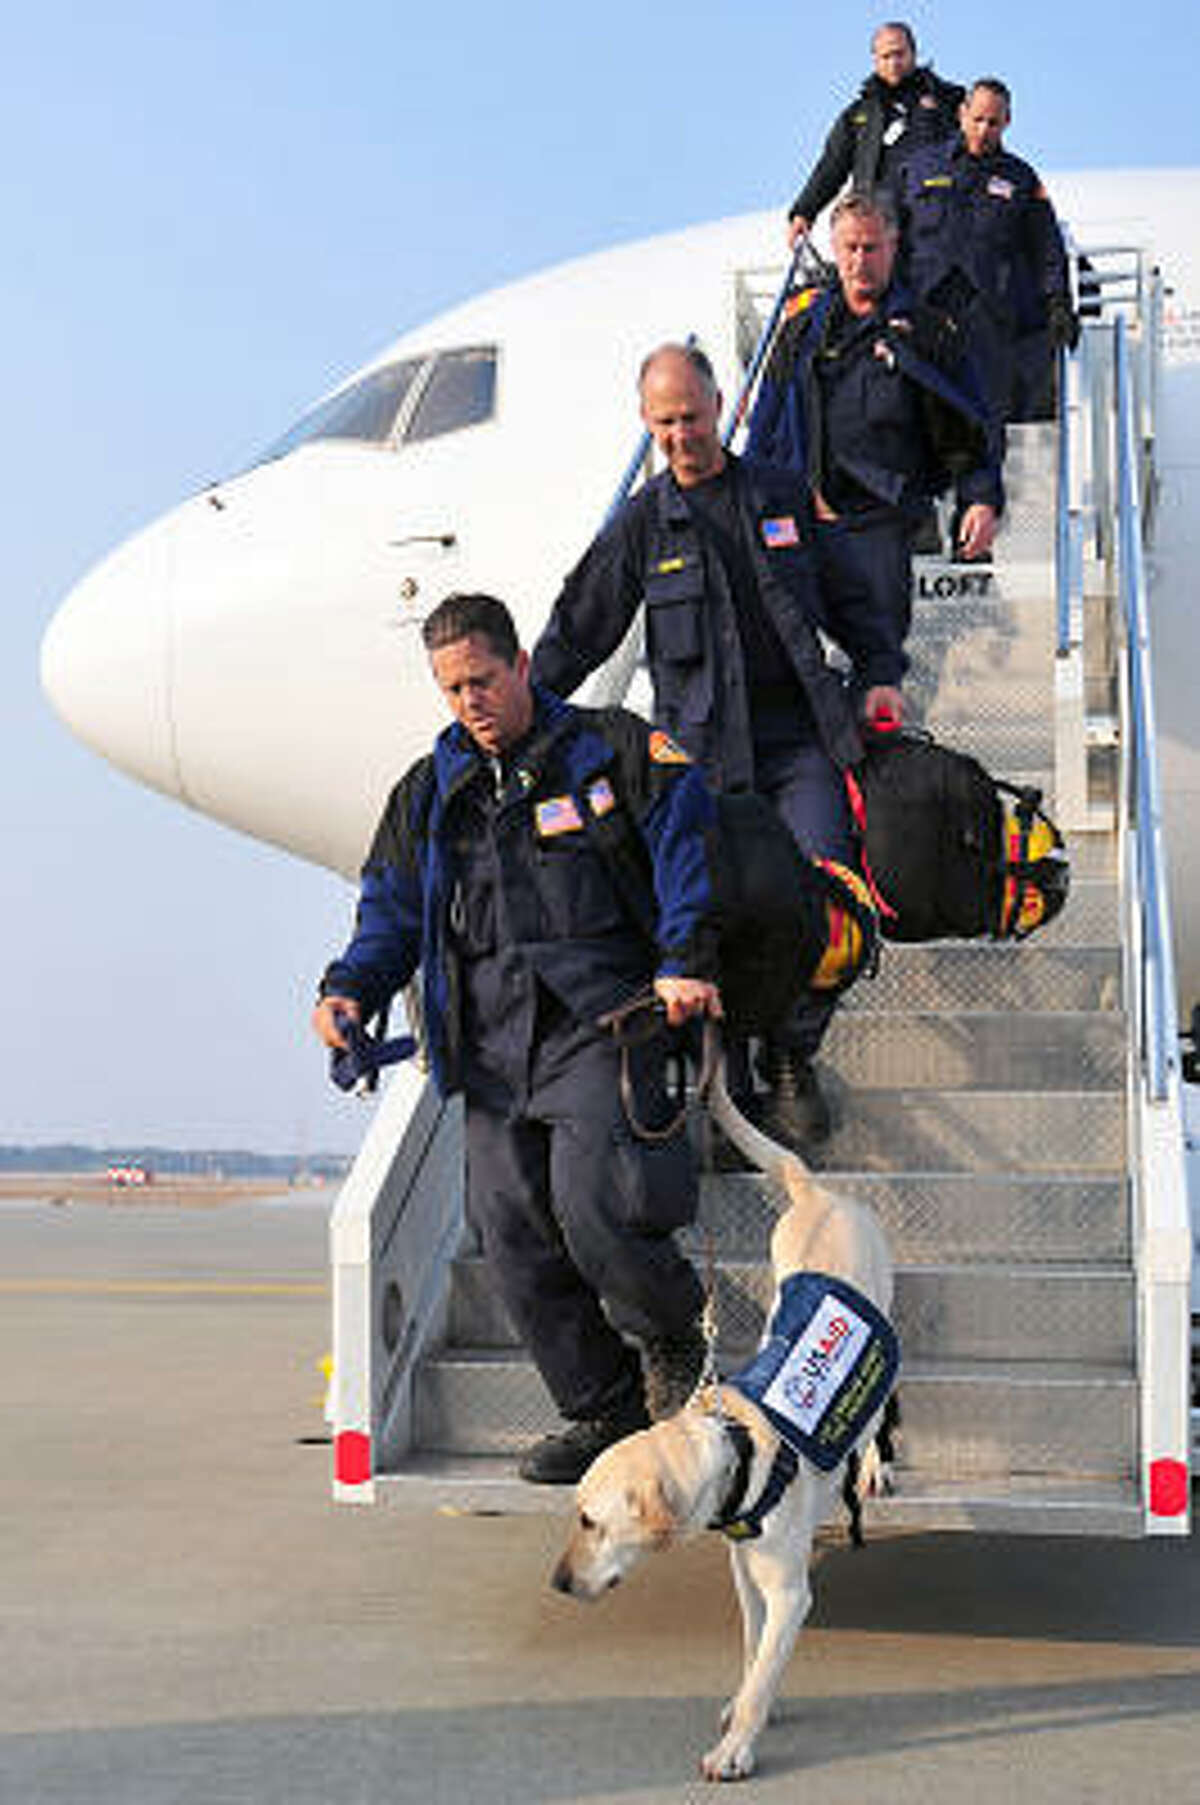 United States Agency for International Development search and rescue dogs along with their handlers arrive March 13 at Misawa Air Base, a United States Air Force installation.